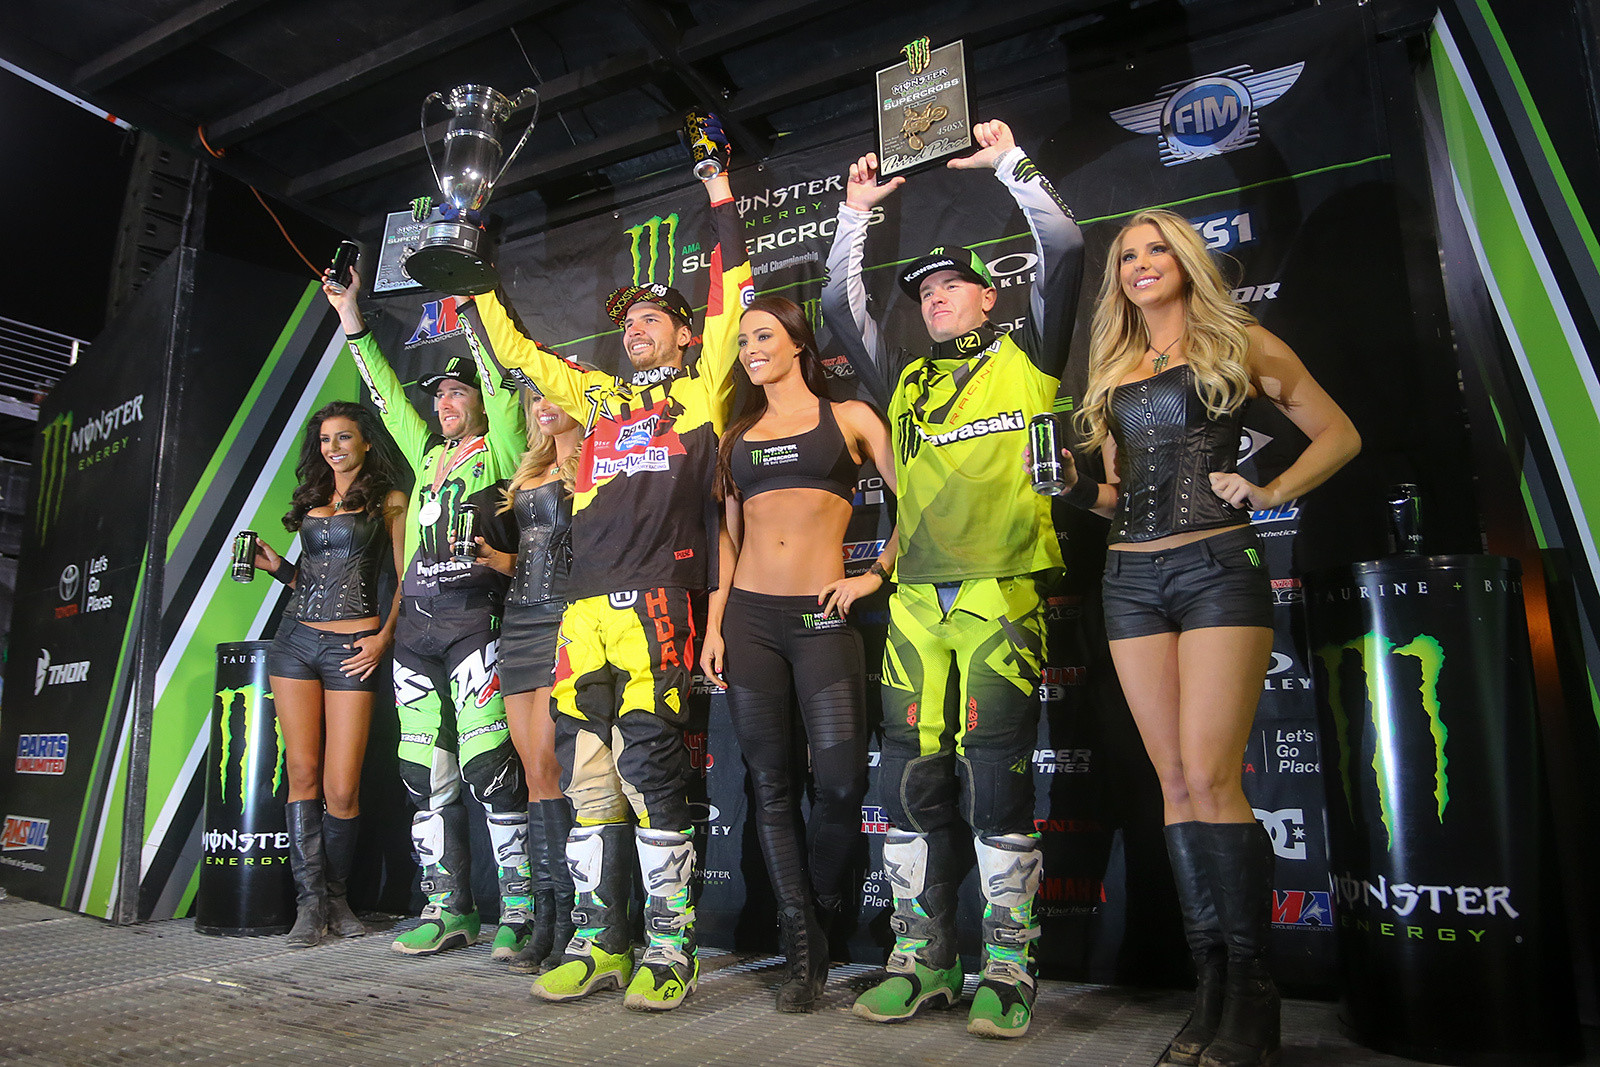 Jason Anderson was pumped on scoring a win before the season, and getting that monkey off his back. The team had plenty of fun celebrating his win and Zach's championship.